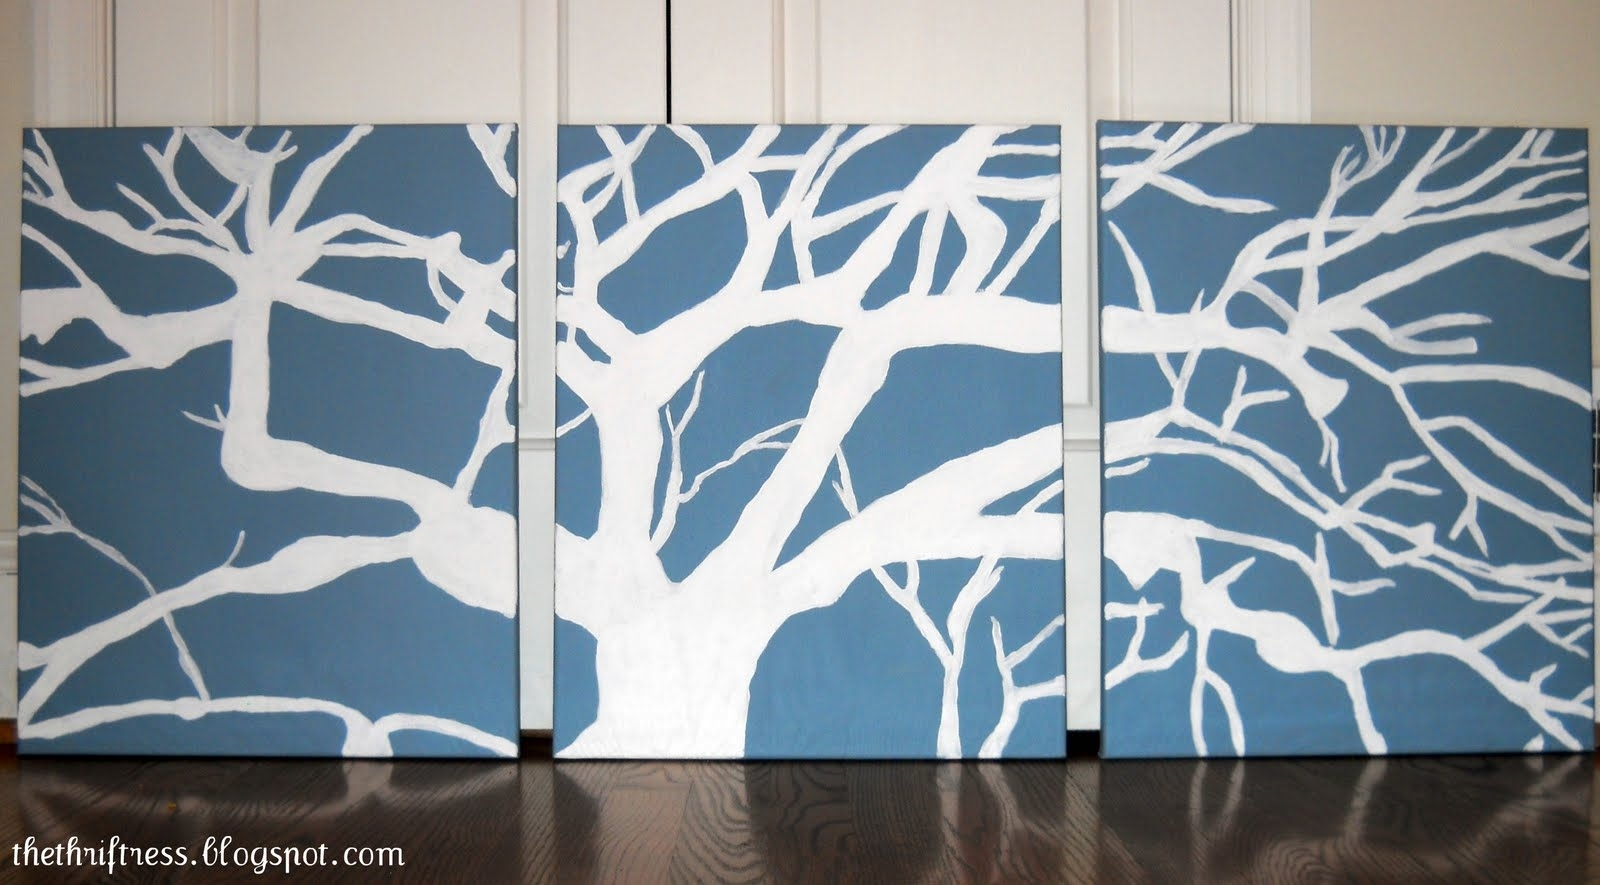 Diy Wall Art Stencils Paint Fabric - Dma Homes | #37854 intended for Newest Diy Fabric Wall Art Panels